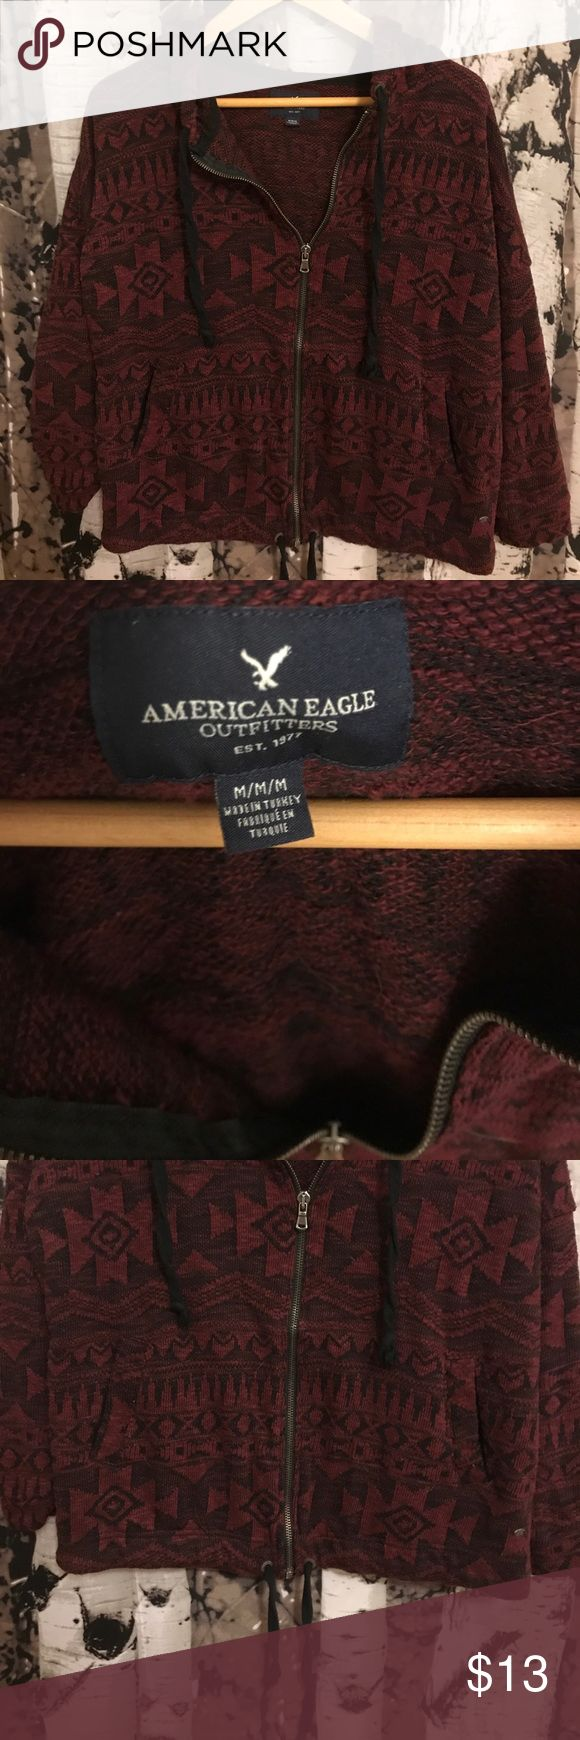 American Eagle Zip Up Hoodie Aztec Pattern Maroon Dark maroon zip up American Eagle hoodie. Only worn a few times, in good condition. From a smoke free home! American Eagle Outfitters Tops Sweatshirts & Hoodies